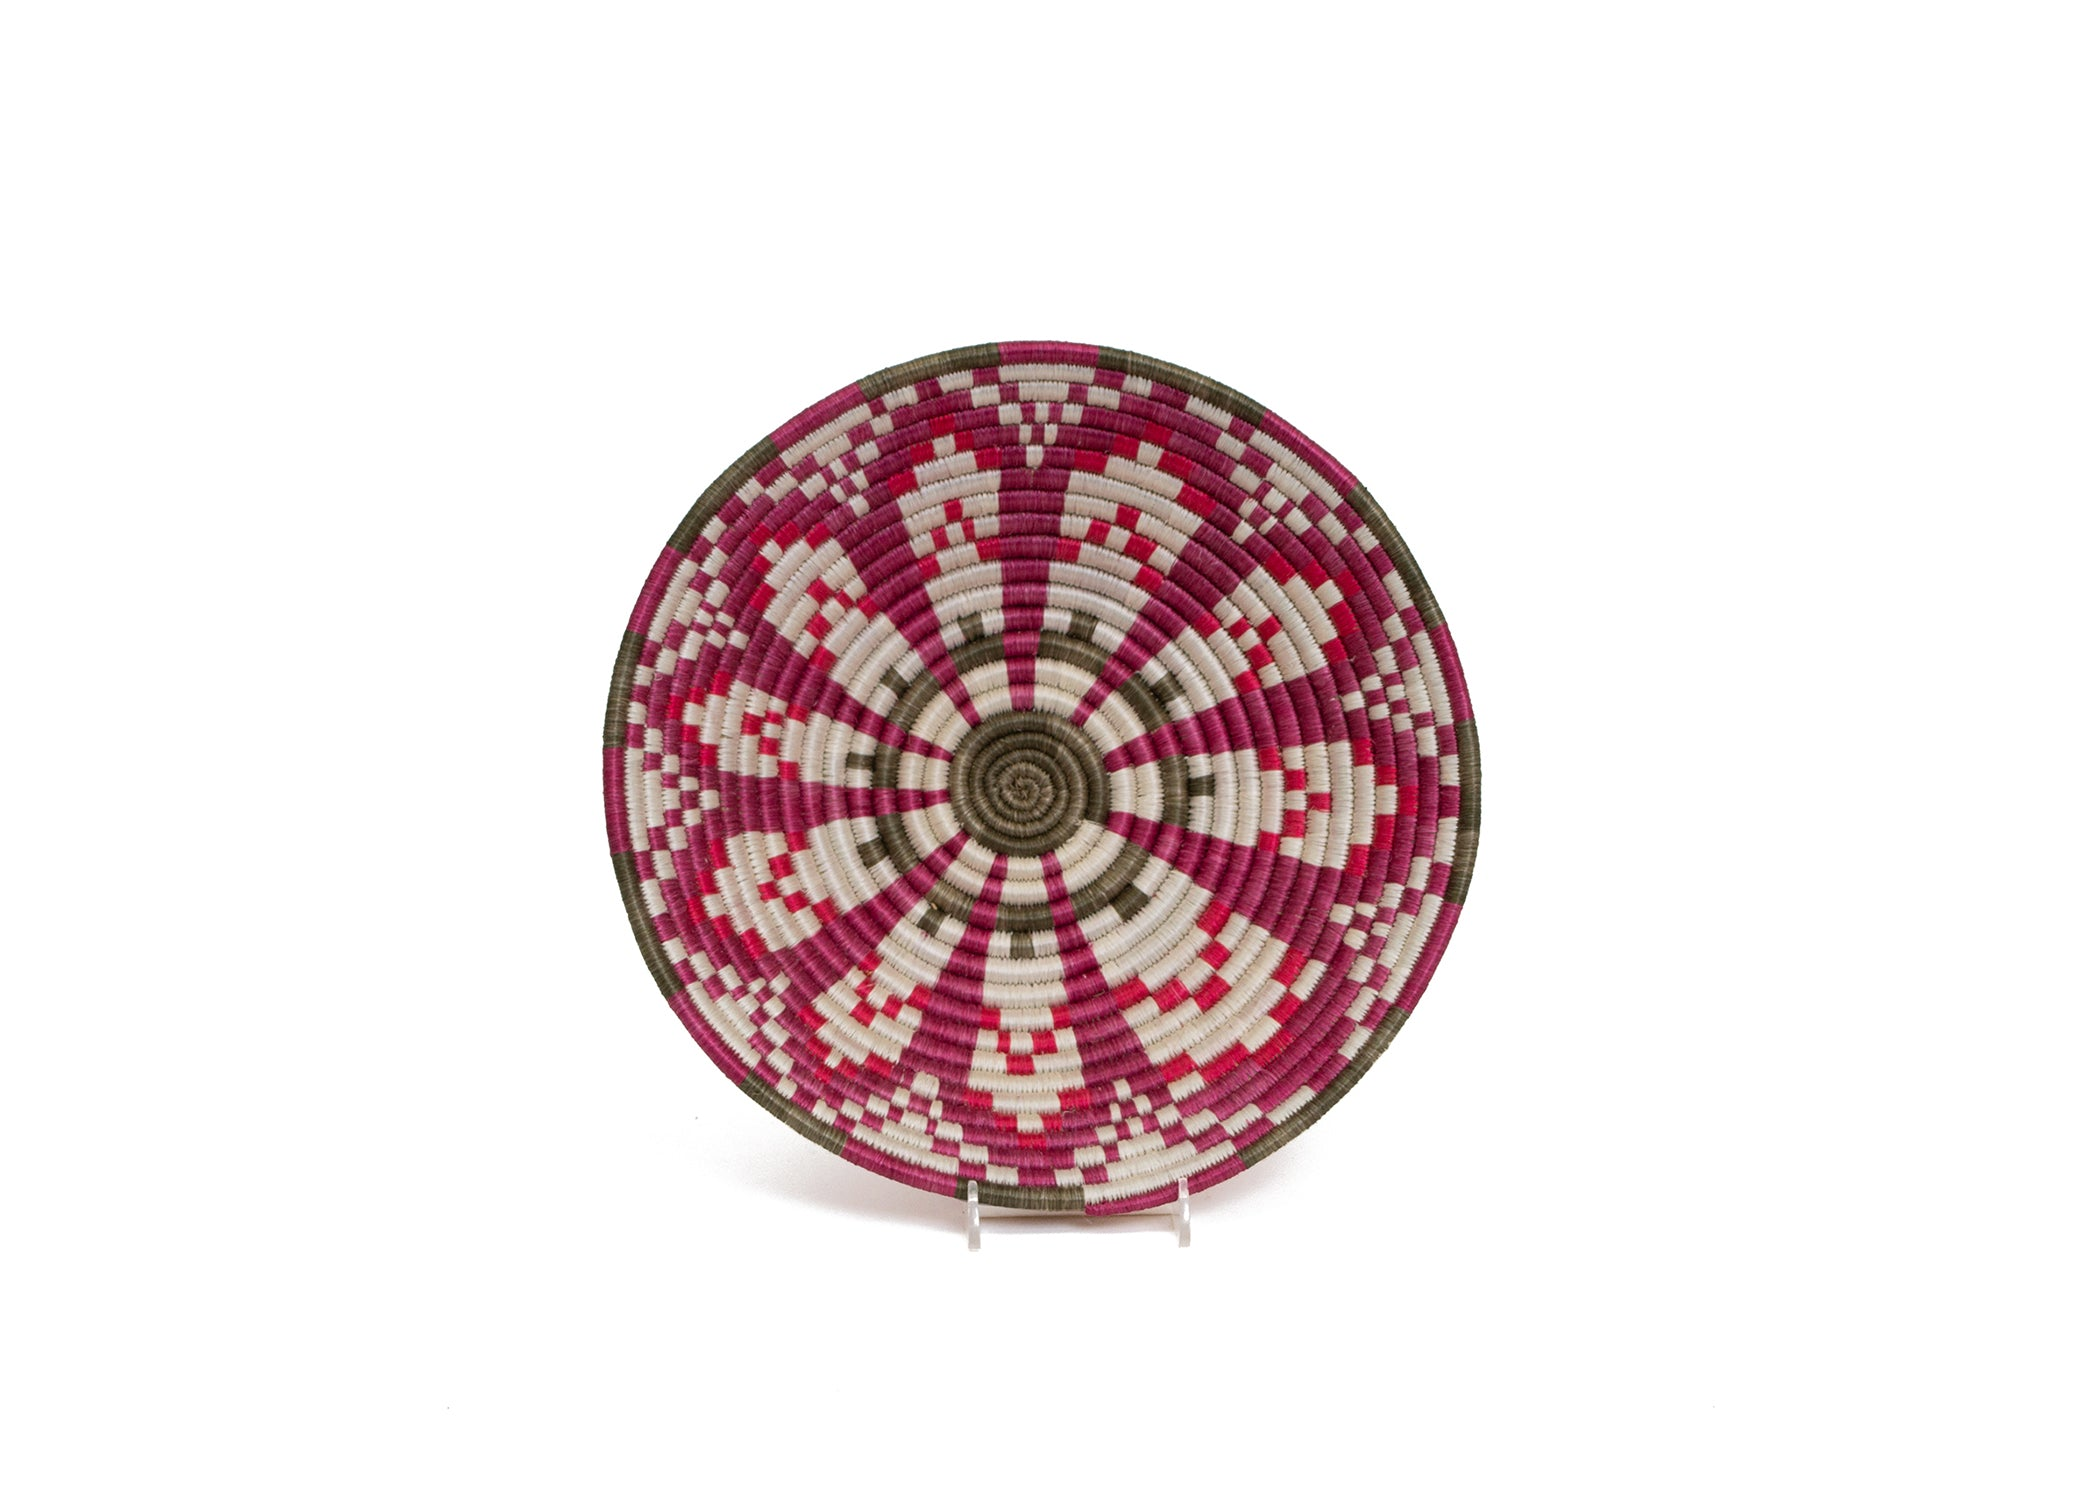 Medium Poinsettia Bowl - KAZI - Artisan made high quality home decor and wall art